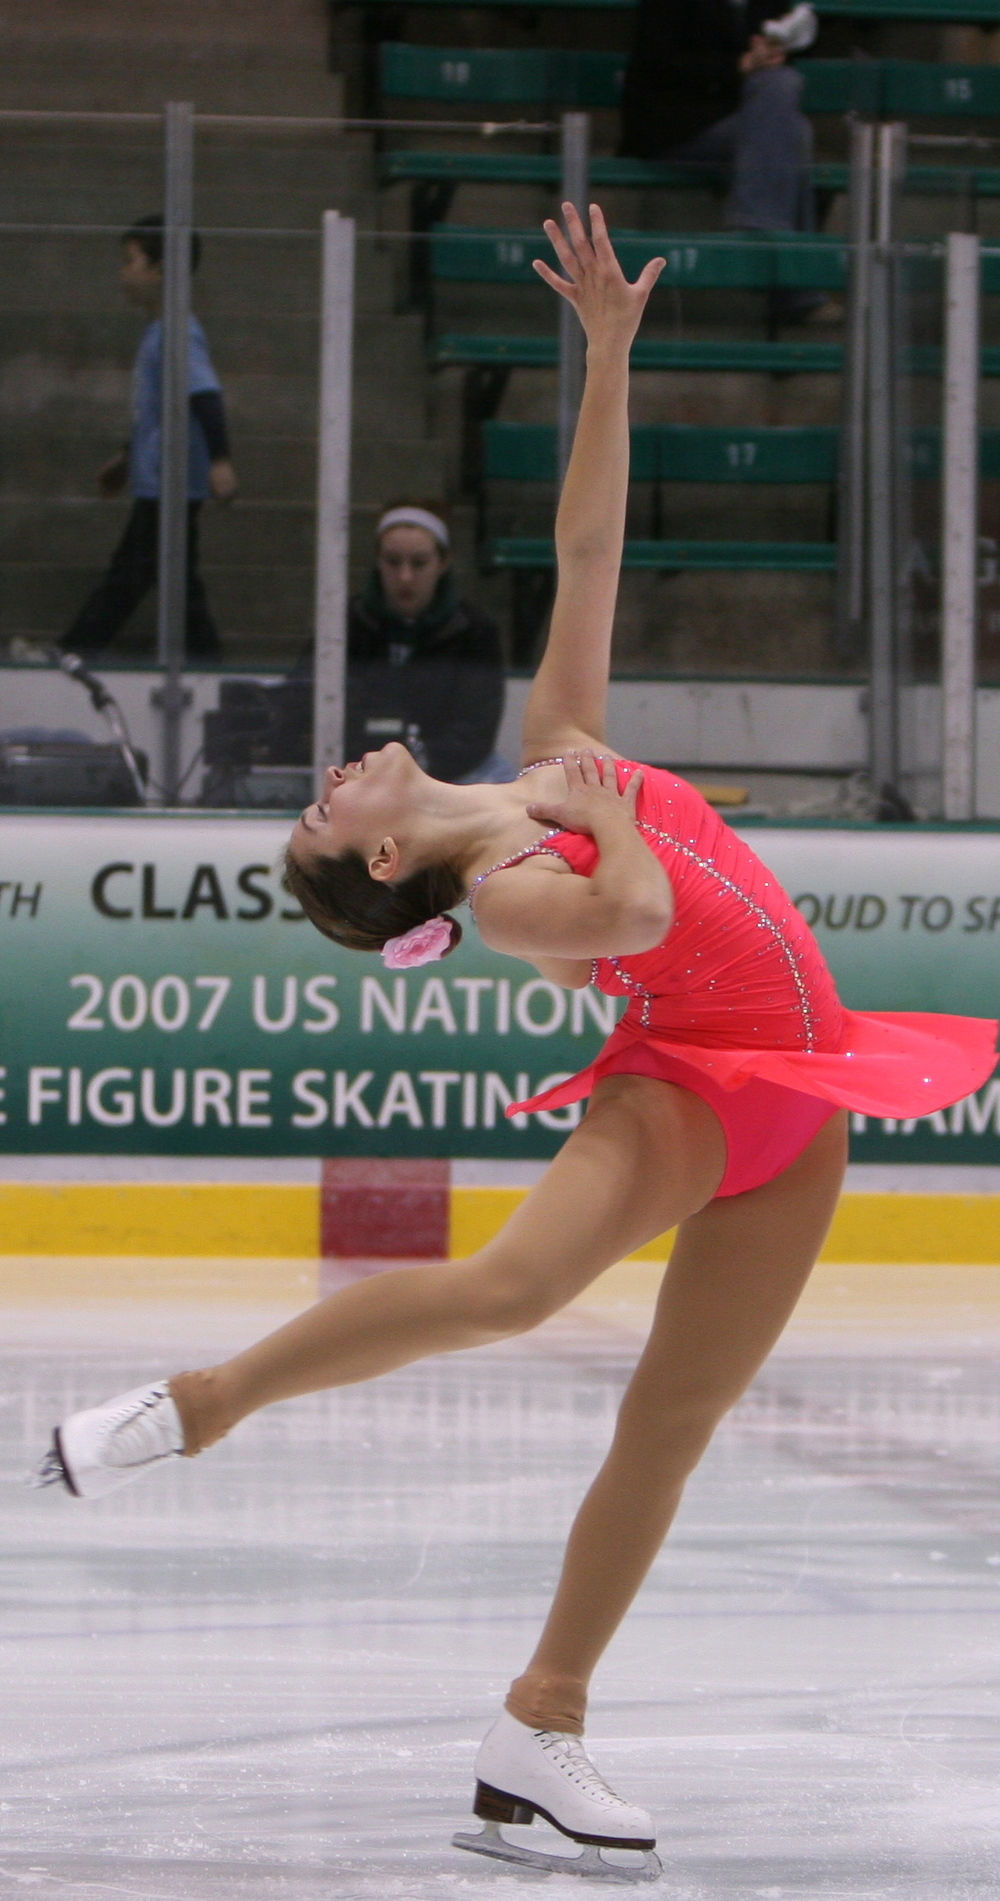 Back in the figure skating days!